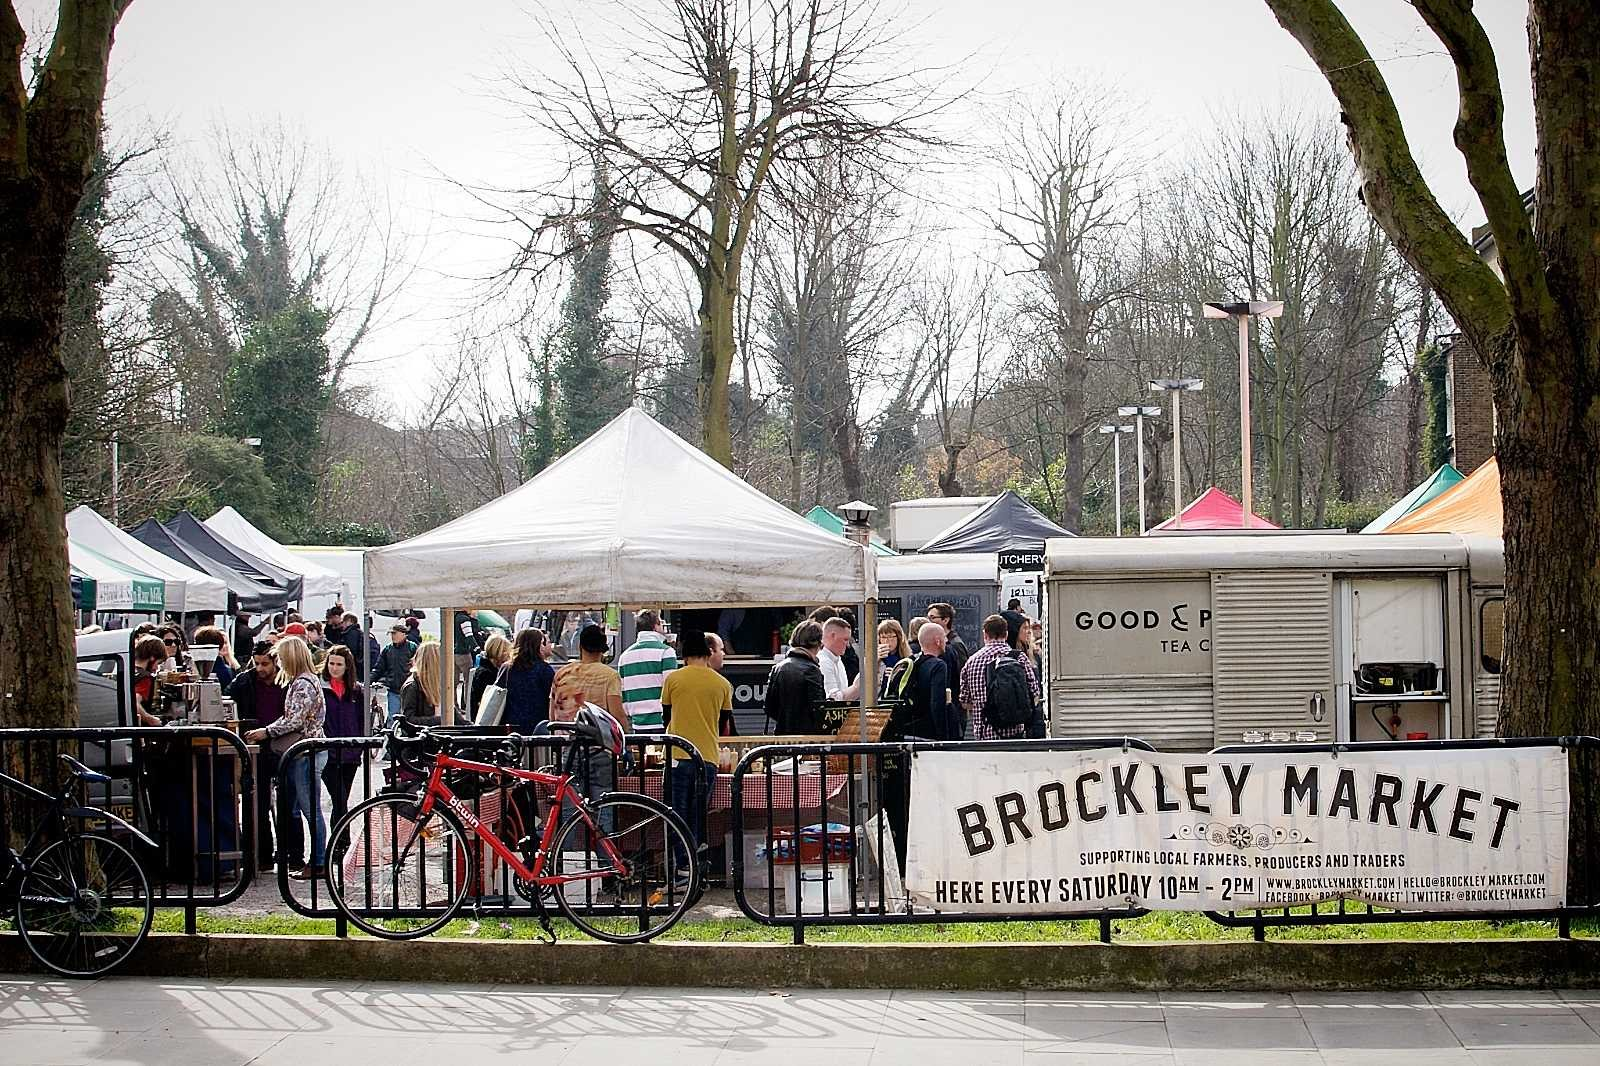 14 Amazing Street Food Markets You Have To Visit In London! (13)